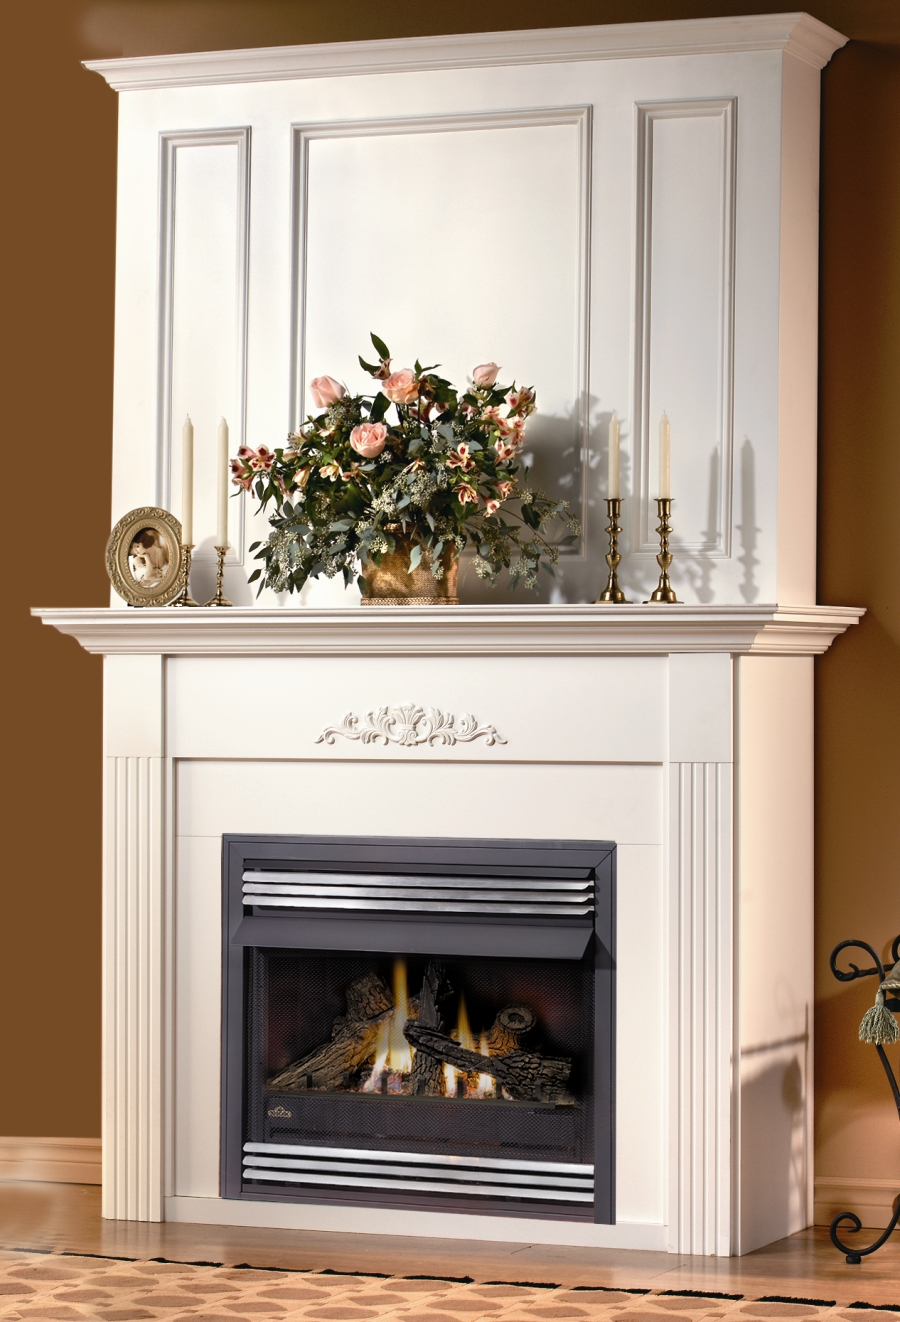 Wall Mounted Natural Gas Fireplace Best Of Napoleon Gvf36 Vent Free Gas Fireplace